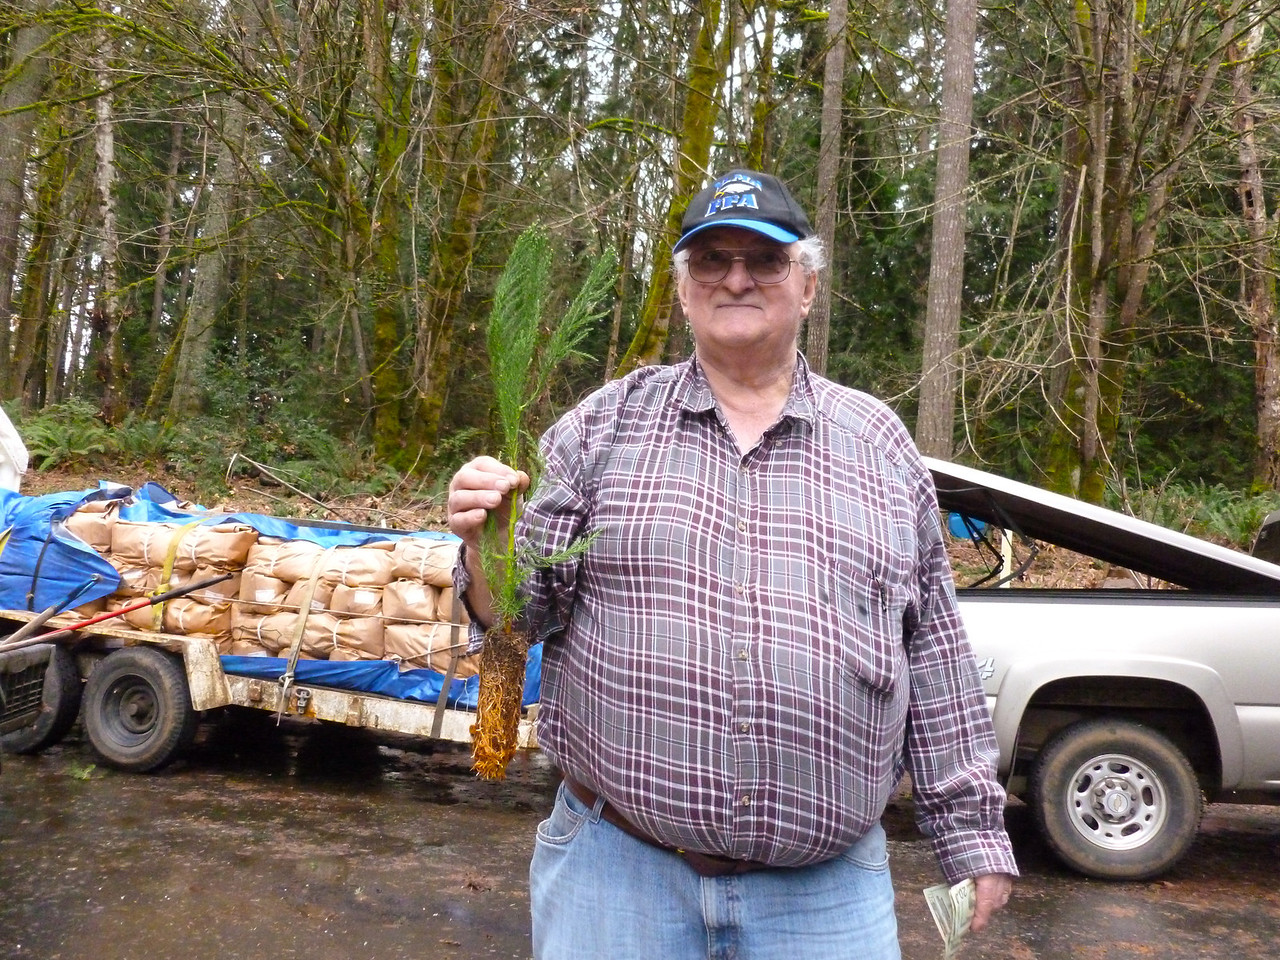 """Dave Pearsall planted an estimated 22 million trees in his lifetime.  He is a tree farmer.  He only lasted 2 days at Weyerhaeuser but he found his niche in private lands and land trusts.   """"Some day about 50 years from now when a Giant Sequioa is 10% mature, you may look on a mountain top in Pacific County and see trees we planted today. Giant Sequioa, Western White Pine and Douglas Fir. Sorry, I will not be around to remind you to see trees in 50 years.""""    -   Dave Pearsall         I picked up 100 of these Giant Sequoia Seedlings in West Olympia on March 1, 2013.  They will go in the ground on March 2, 2013.  These require a Dibble or in my case a 2 1/2"""" Diameter Rod to drive a hole into the ground.  I found these much easier to plant than the Douglas Fir Seedlings.    March 1, 2013"""